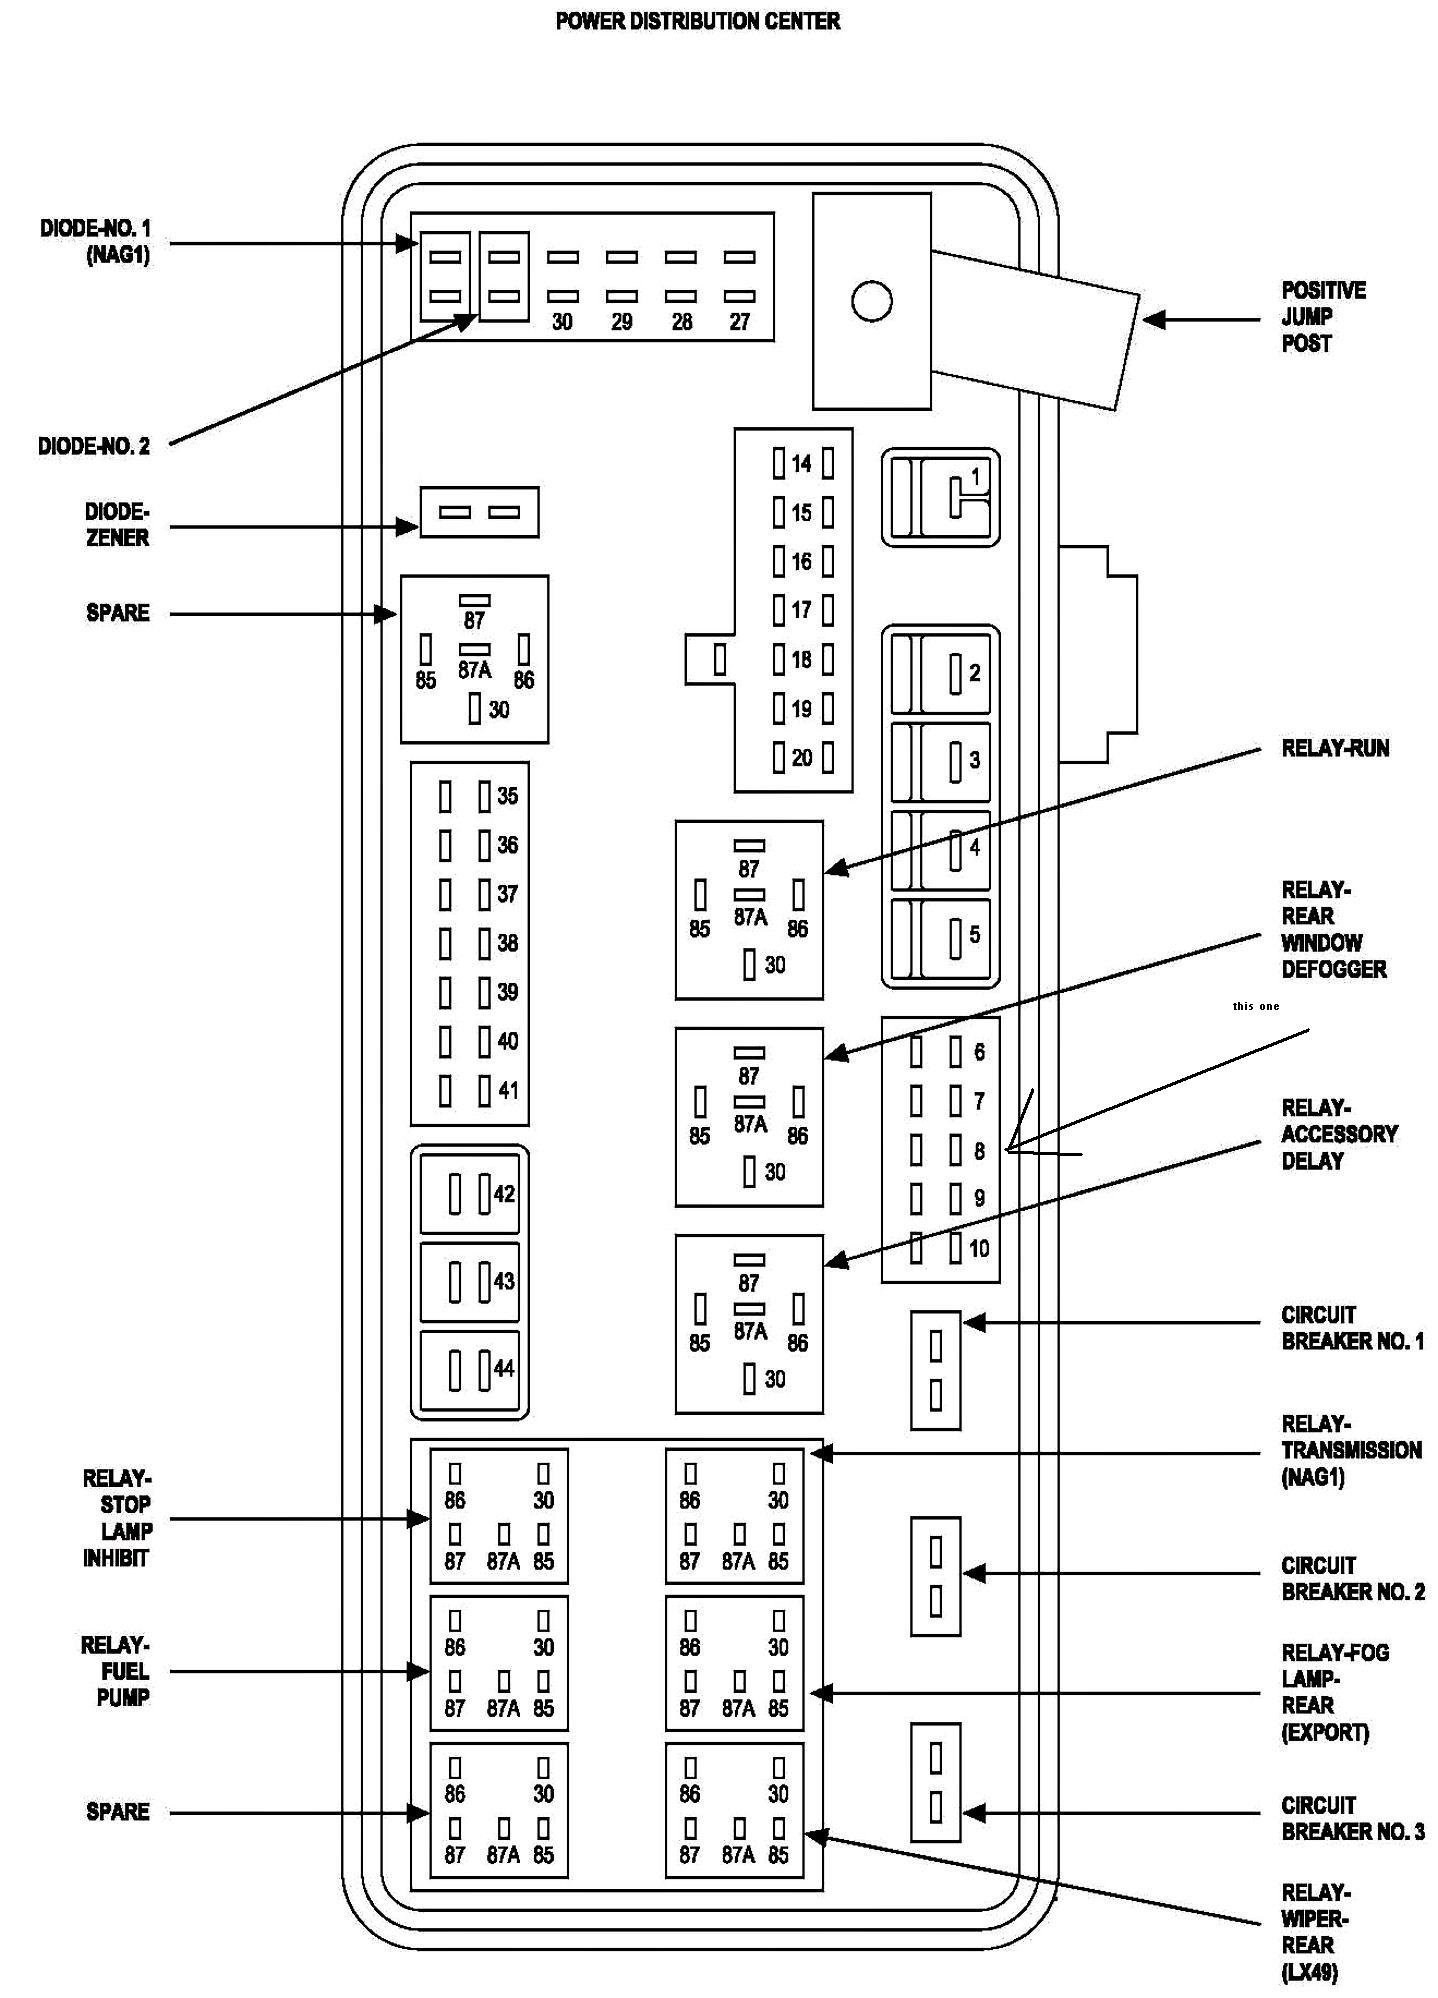 [DIAGRAM_5NL]  C2C6 Bonneville 1994 Fuse Box Diagram | Wiring Library | 1992 Plymouth Acclaim Wiring Diagram |  | Wiring Library